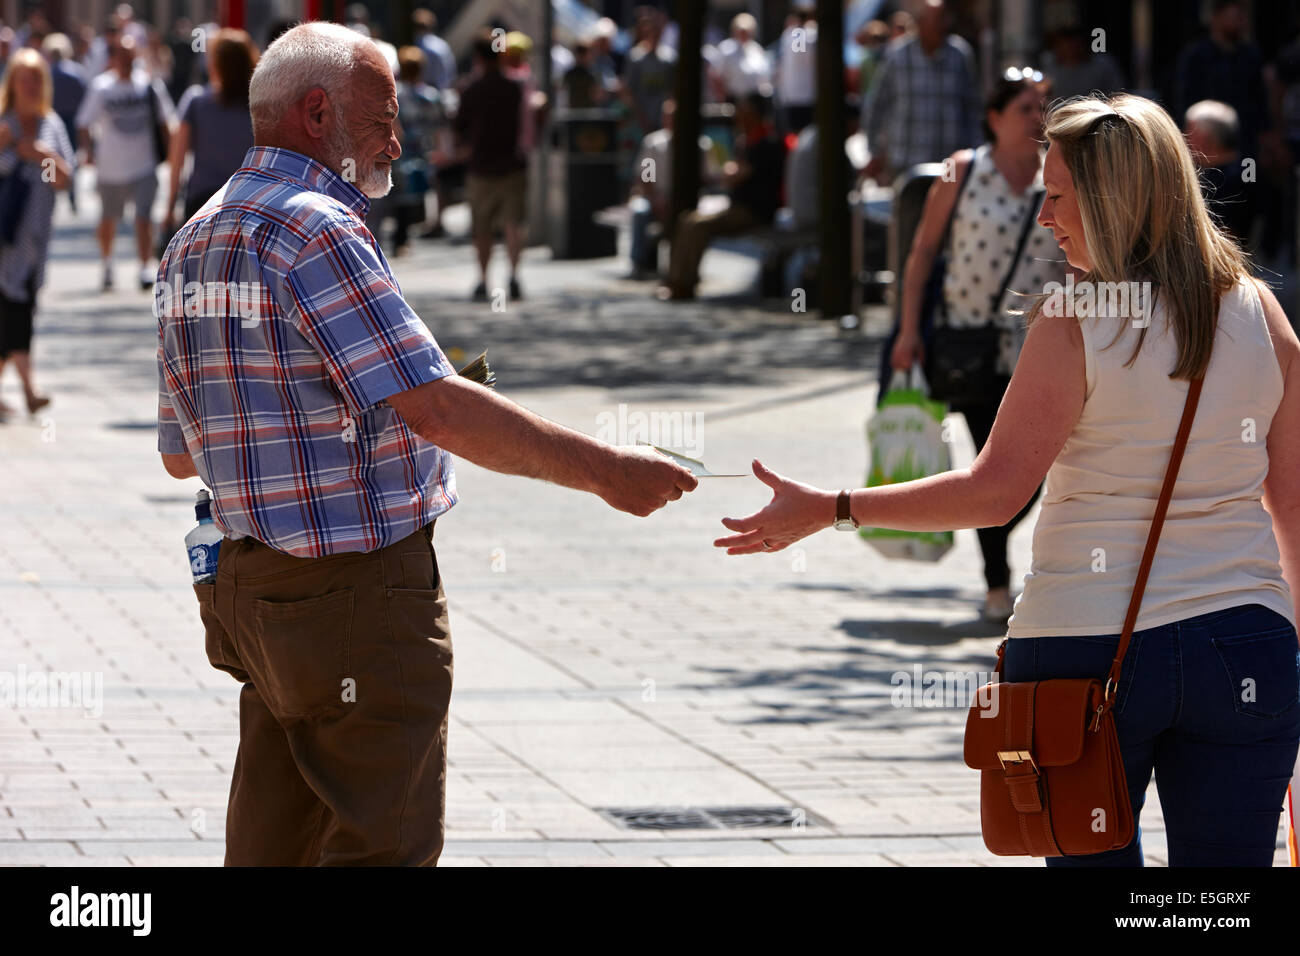 religious preacher handing out leaflets to woman in Belfast city centre - Stock Image